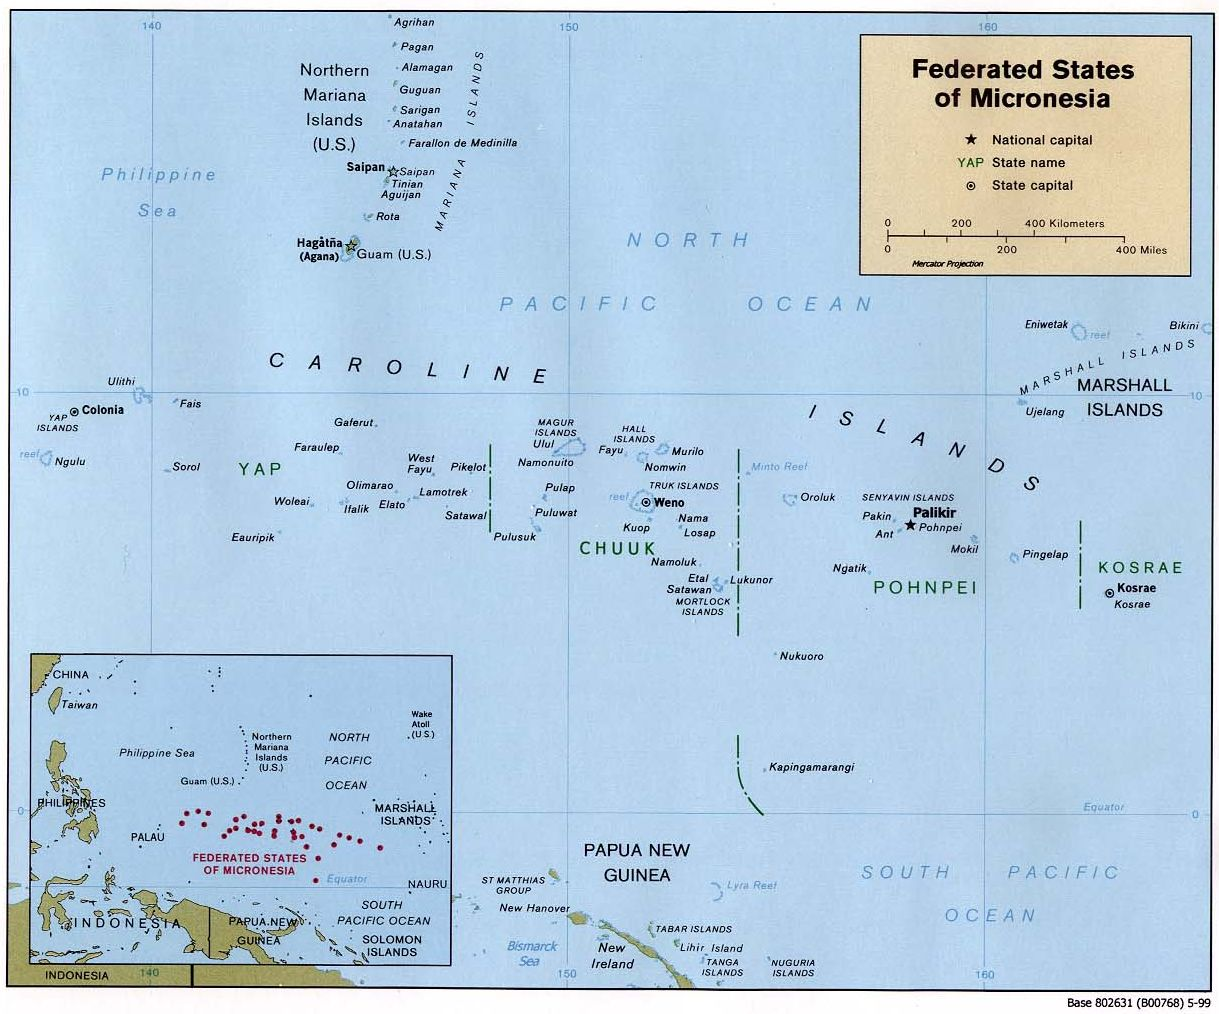 Map of the Federated States of Micronesia (Political), 1999. Courtesy of, The World Factbook (http://cia.gov/cia/publications/factbook) or CIA Maps and Publications Released to the Public (http://www.cia.gov/cia/publications/mapspub), Central Intelligence Agency (CIA), Government of the United States of America (USA); and the Perry-Casta�eda Map Collection (http://www.lib.utexas.edu/maps), Perry-Casta�eda Library, The General Libraries, University of Texas at Austin, Austin, Texas, USA.